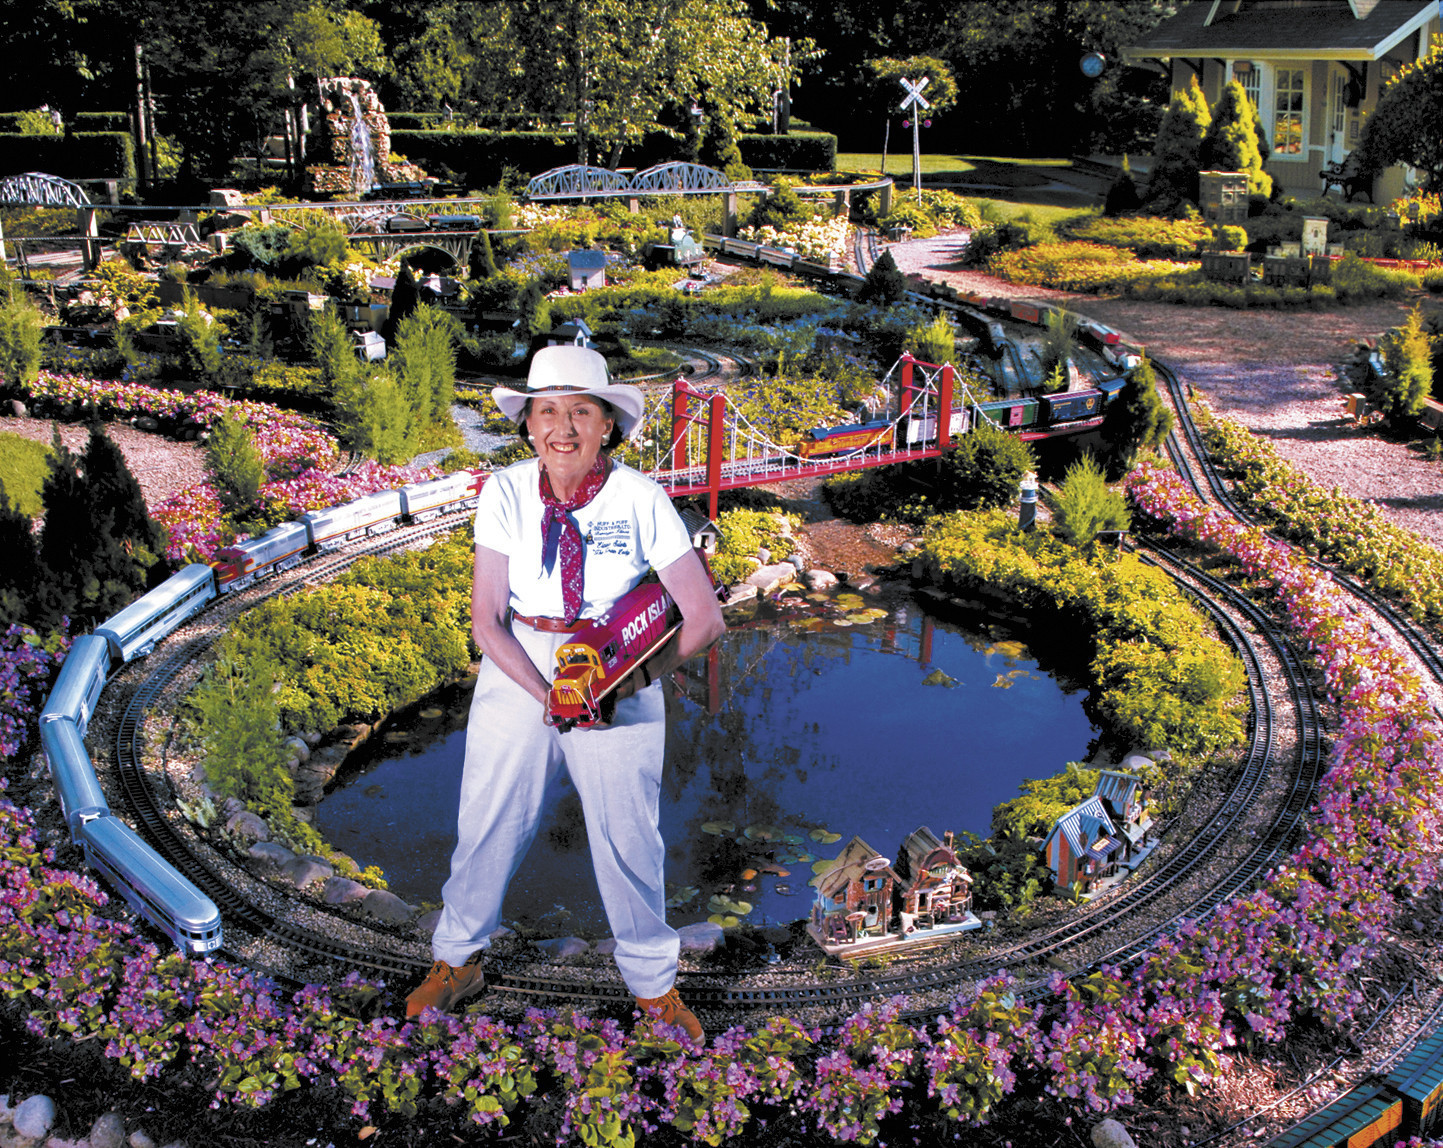 TRAIN LADY OPENS PRIVATE GARDENS AND MODEL RAILROADS FOR ONE DAY